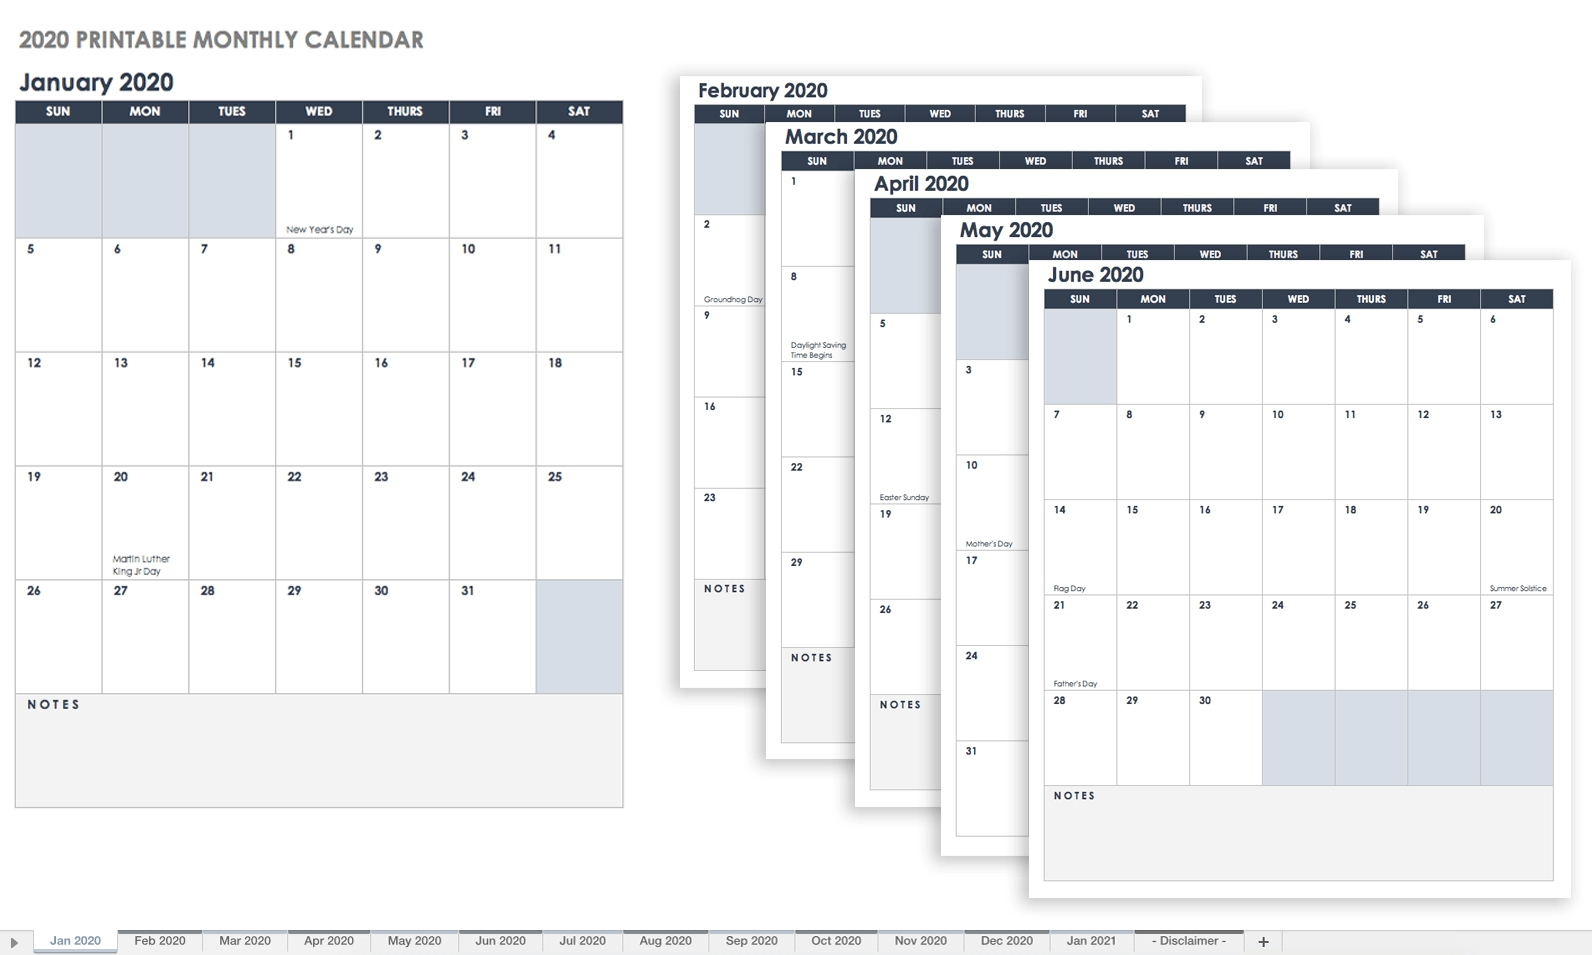 Free Blank Calendar Templates - Smartsheet throughout Fill In Calendar Template Printable